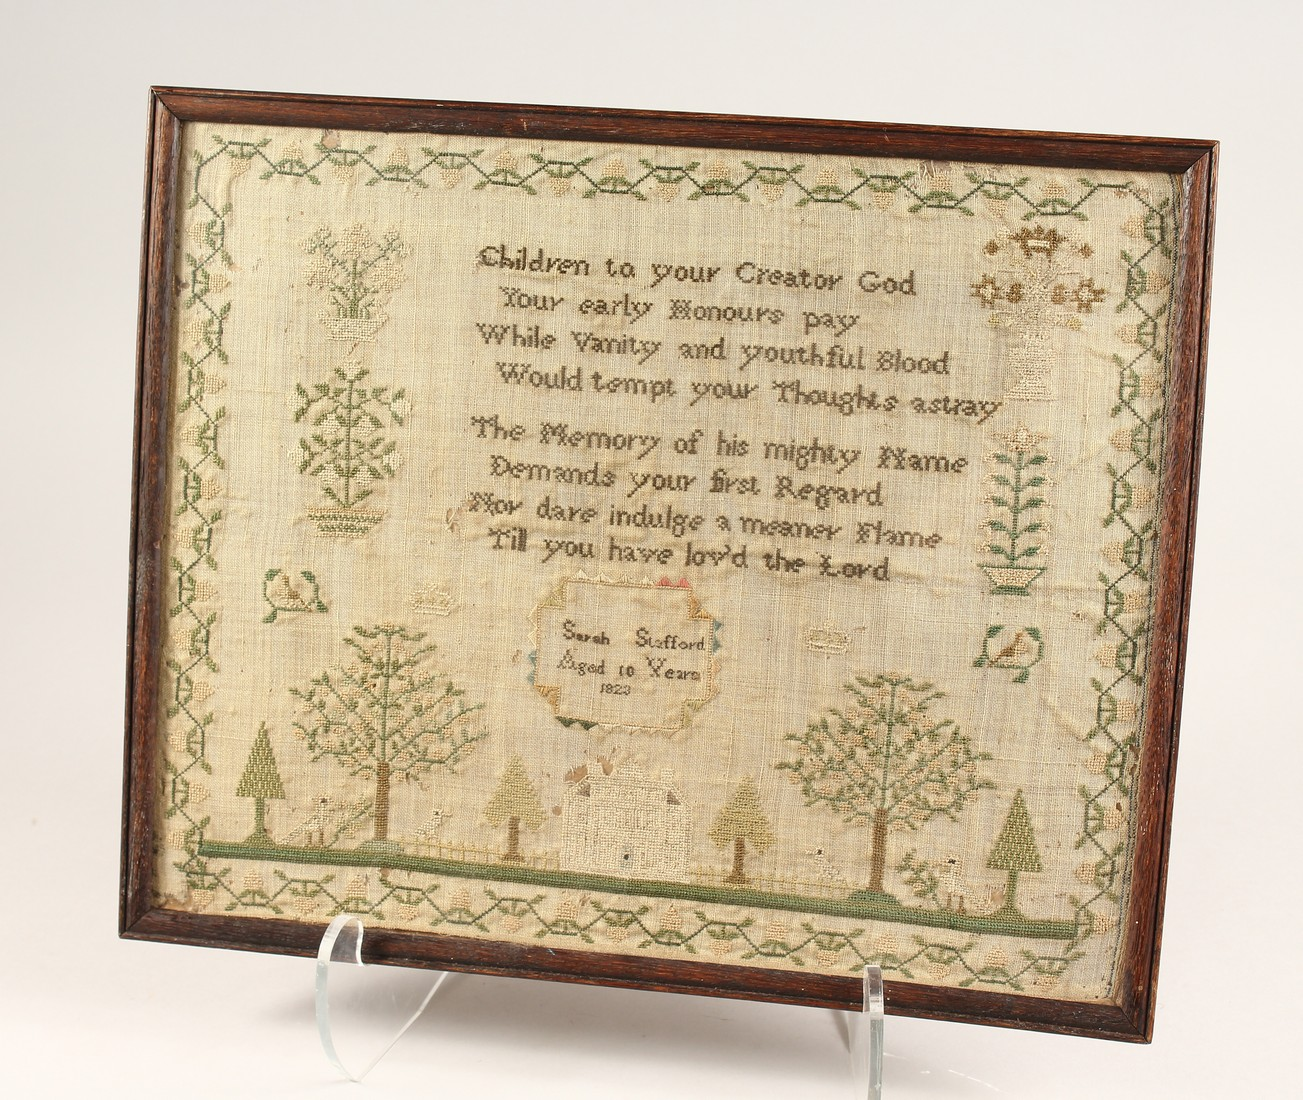 AN 1823 NEEDLEWORK SAMPLER by Sarah Stafford, age 10. 12.5ins x 5ins